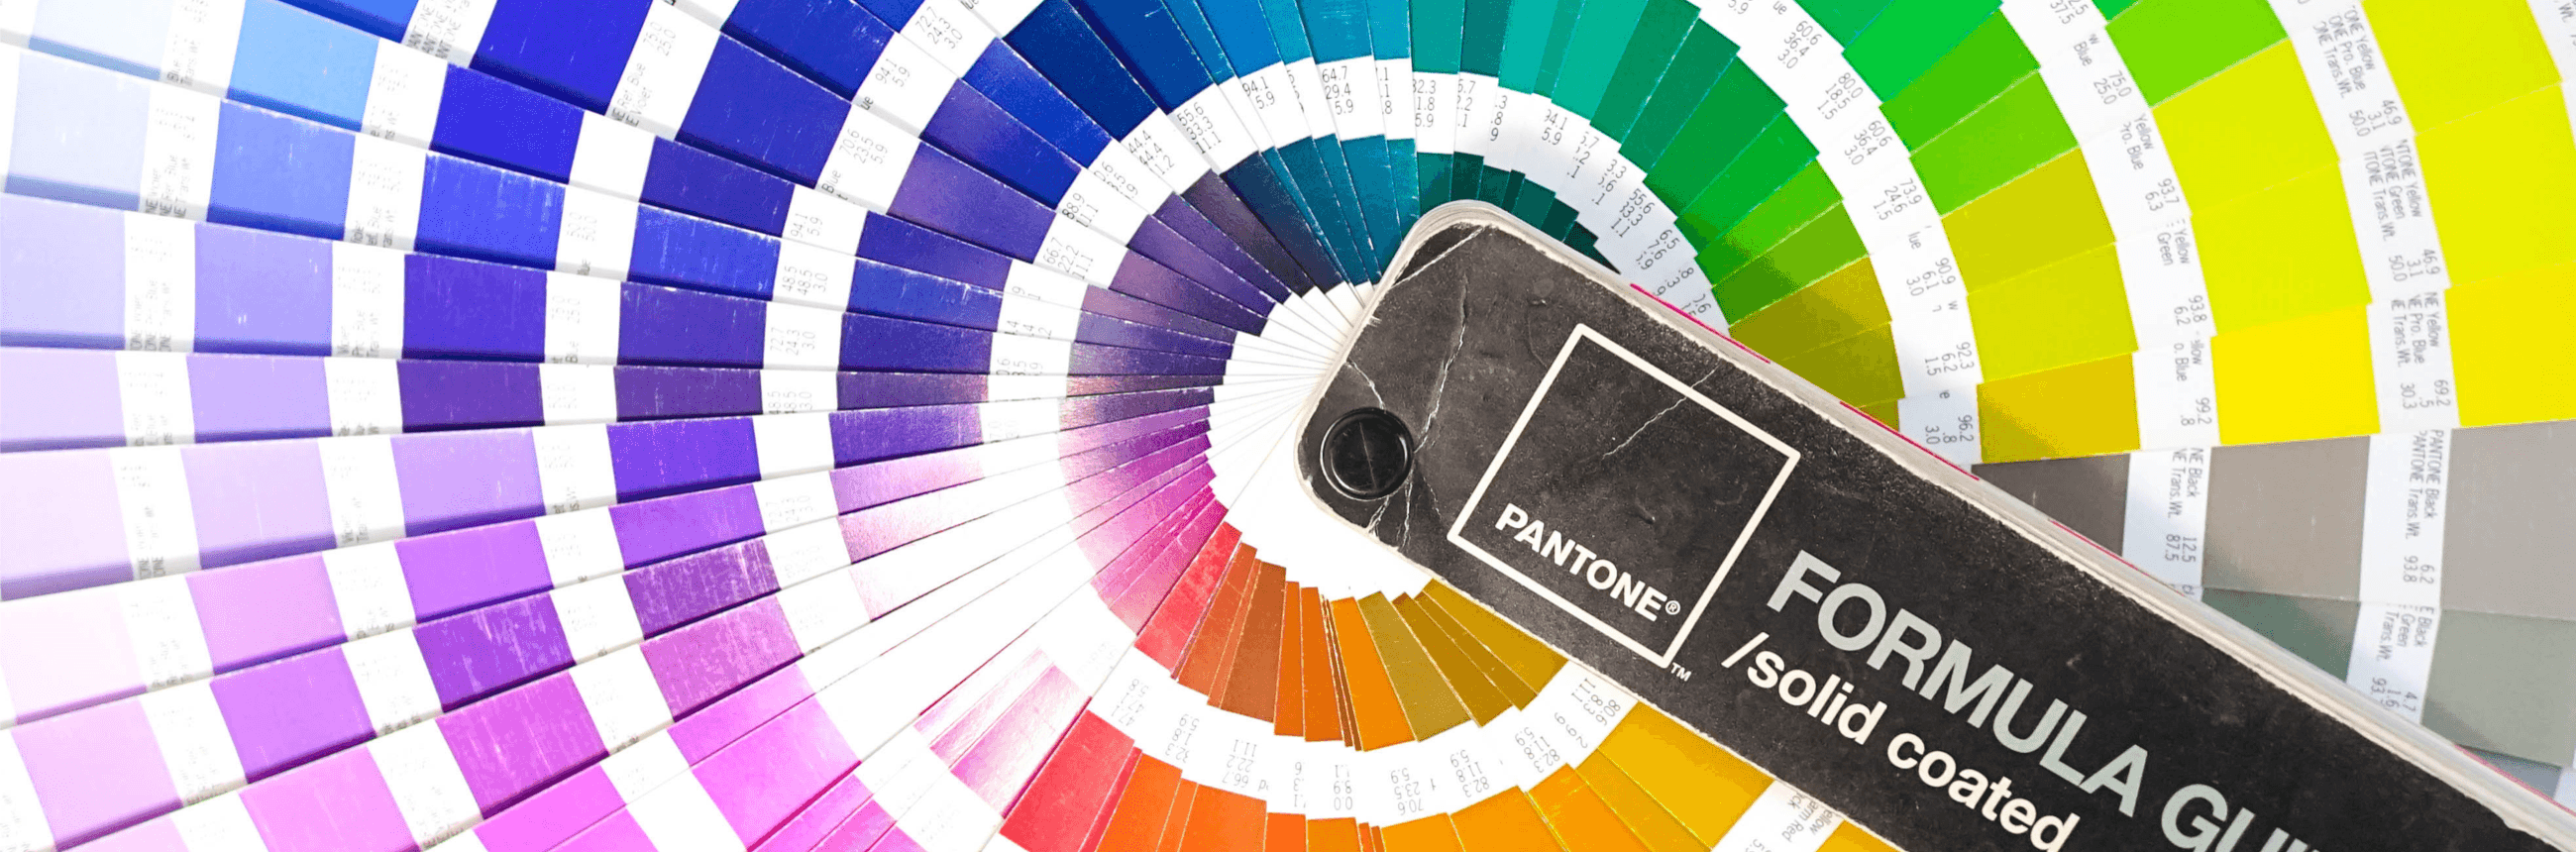 Differences in colour: RGB, CMYK & PMS